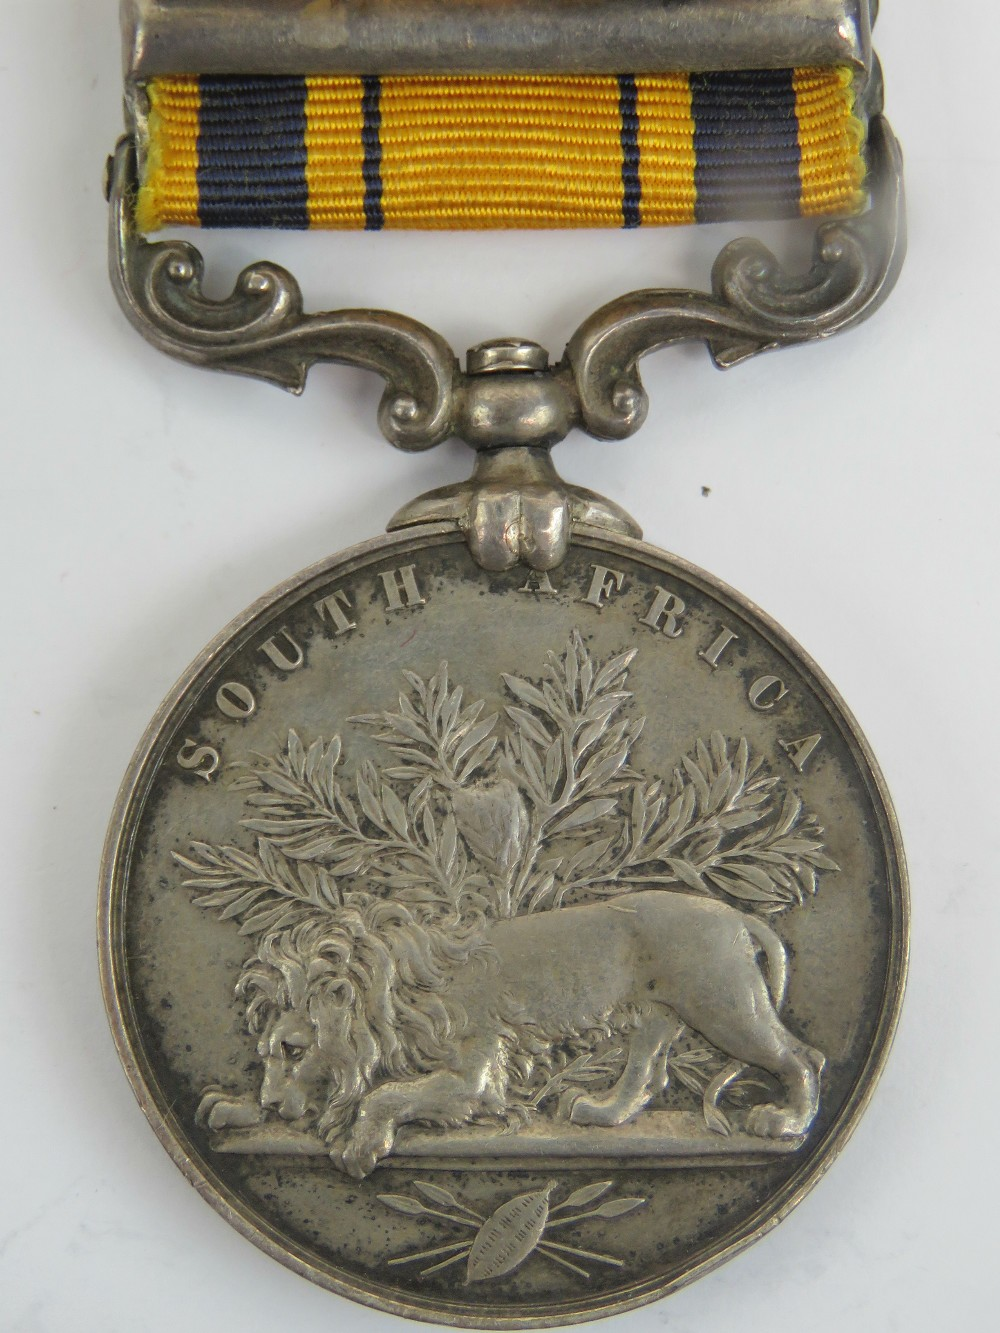 Lot 52 - A South African Zulu war medal (1880) with ribbon and bar for 1879,